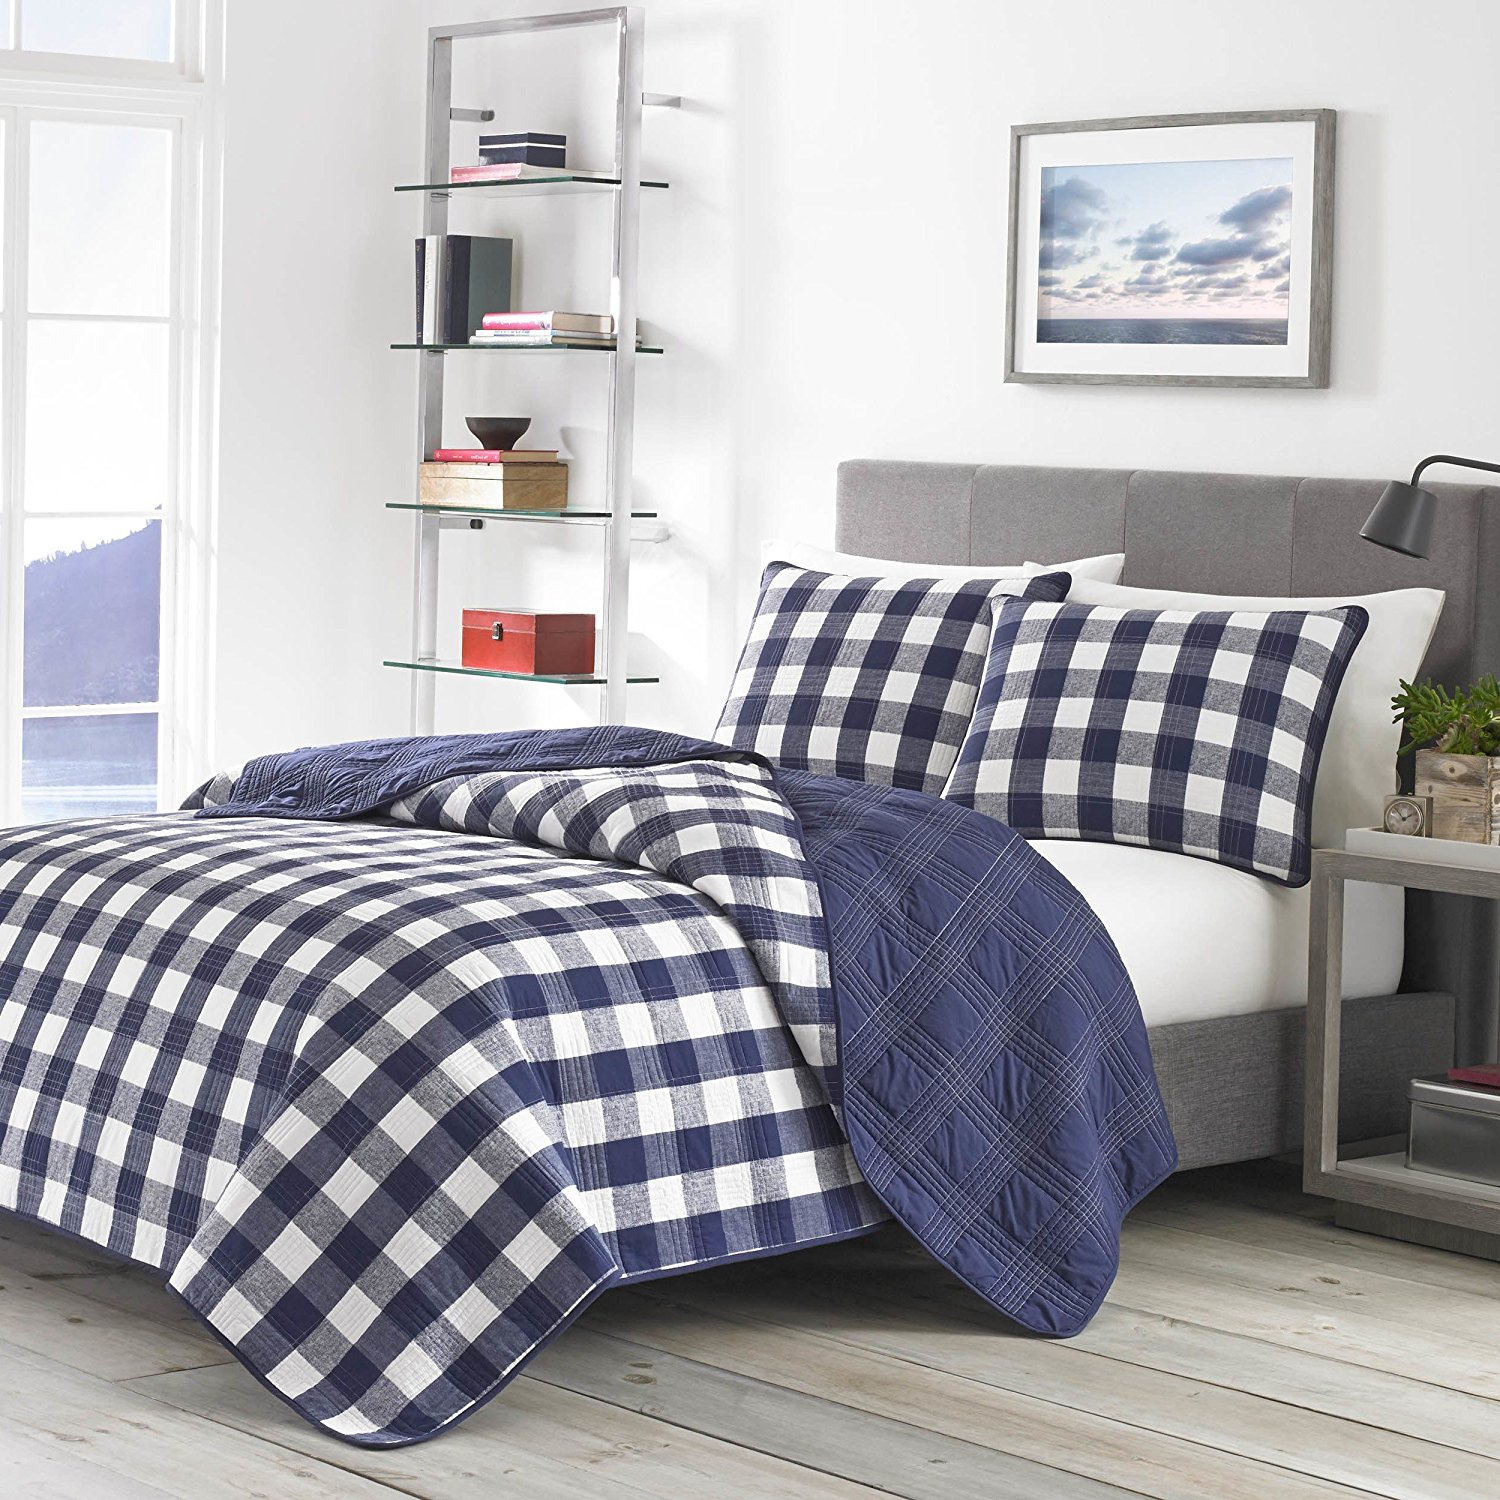 3 Piece Navy Blue White Buffalo Check Pattern Comforter Full Queen Set, Elegance Luxurious All Over Classic Plaid Texture Design Reversible Bedding, Casual Style, Solid Bold Colors, Soft & Cozy Cotton